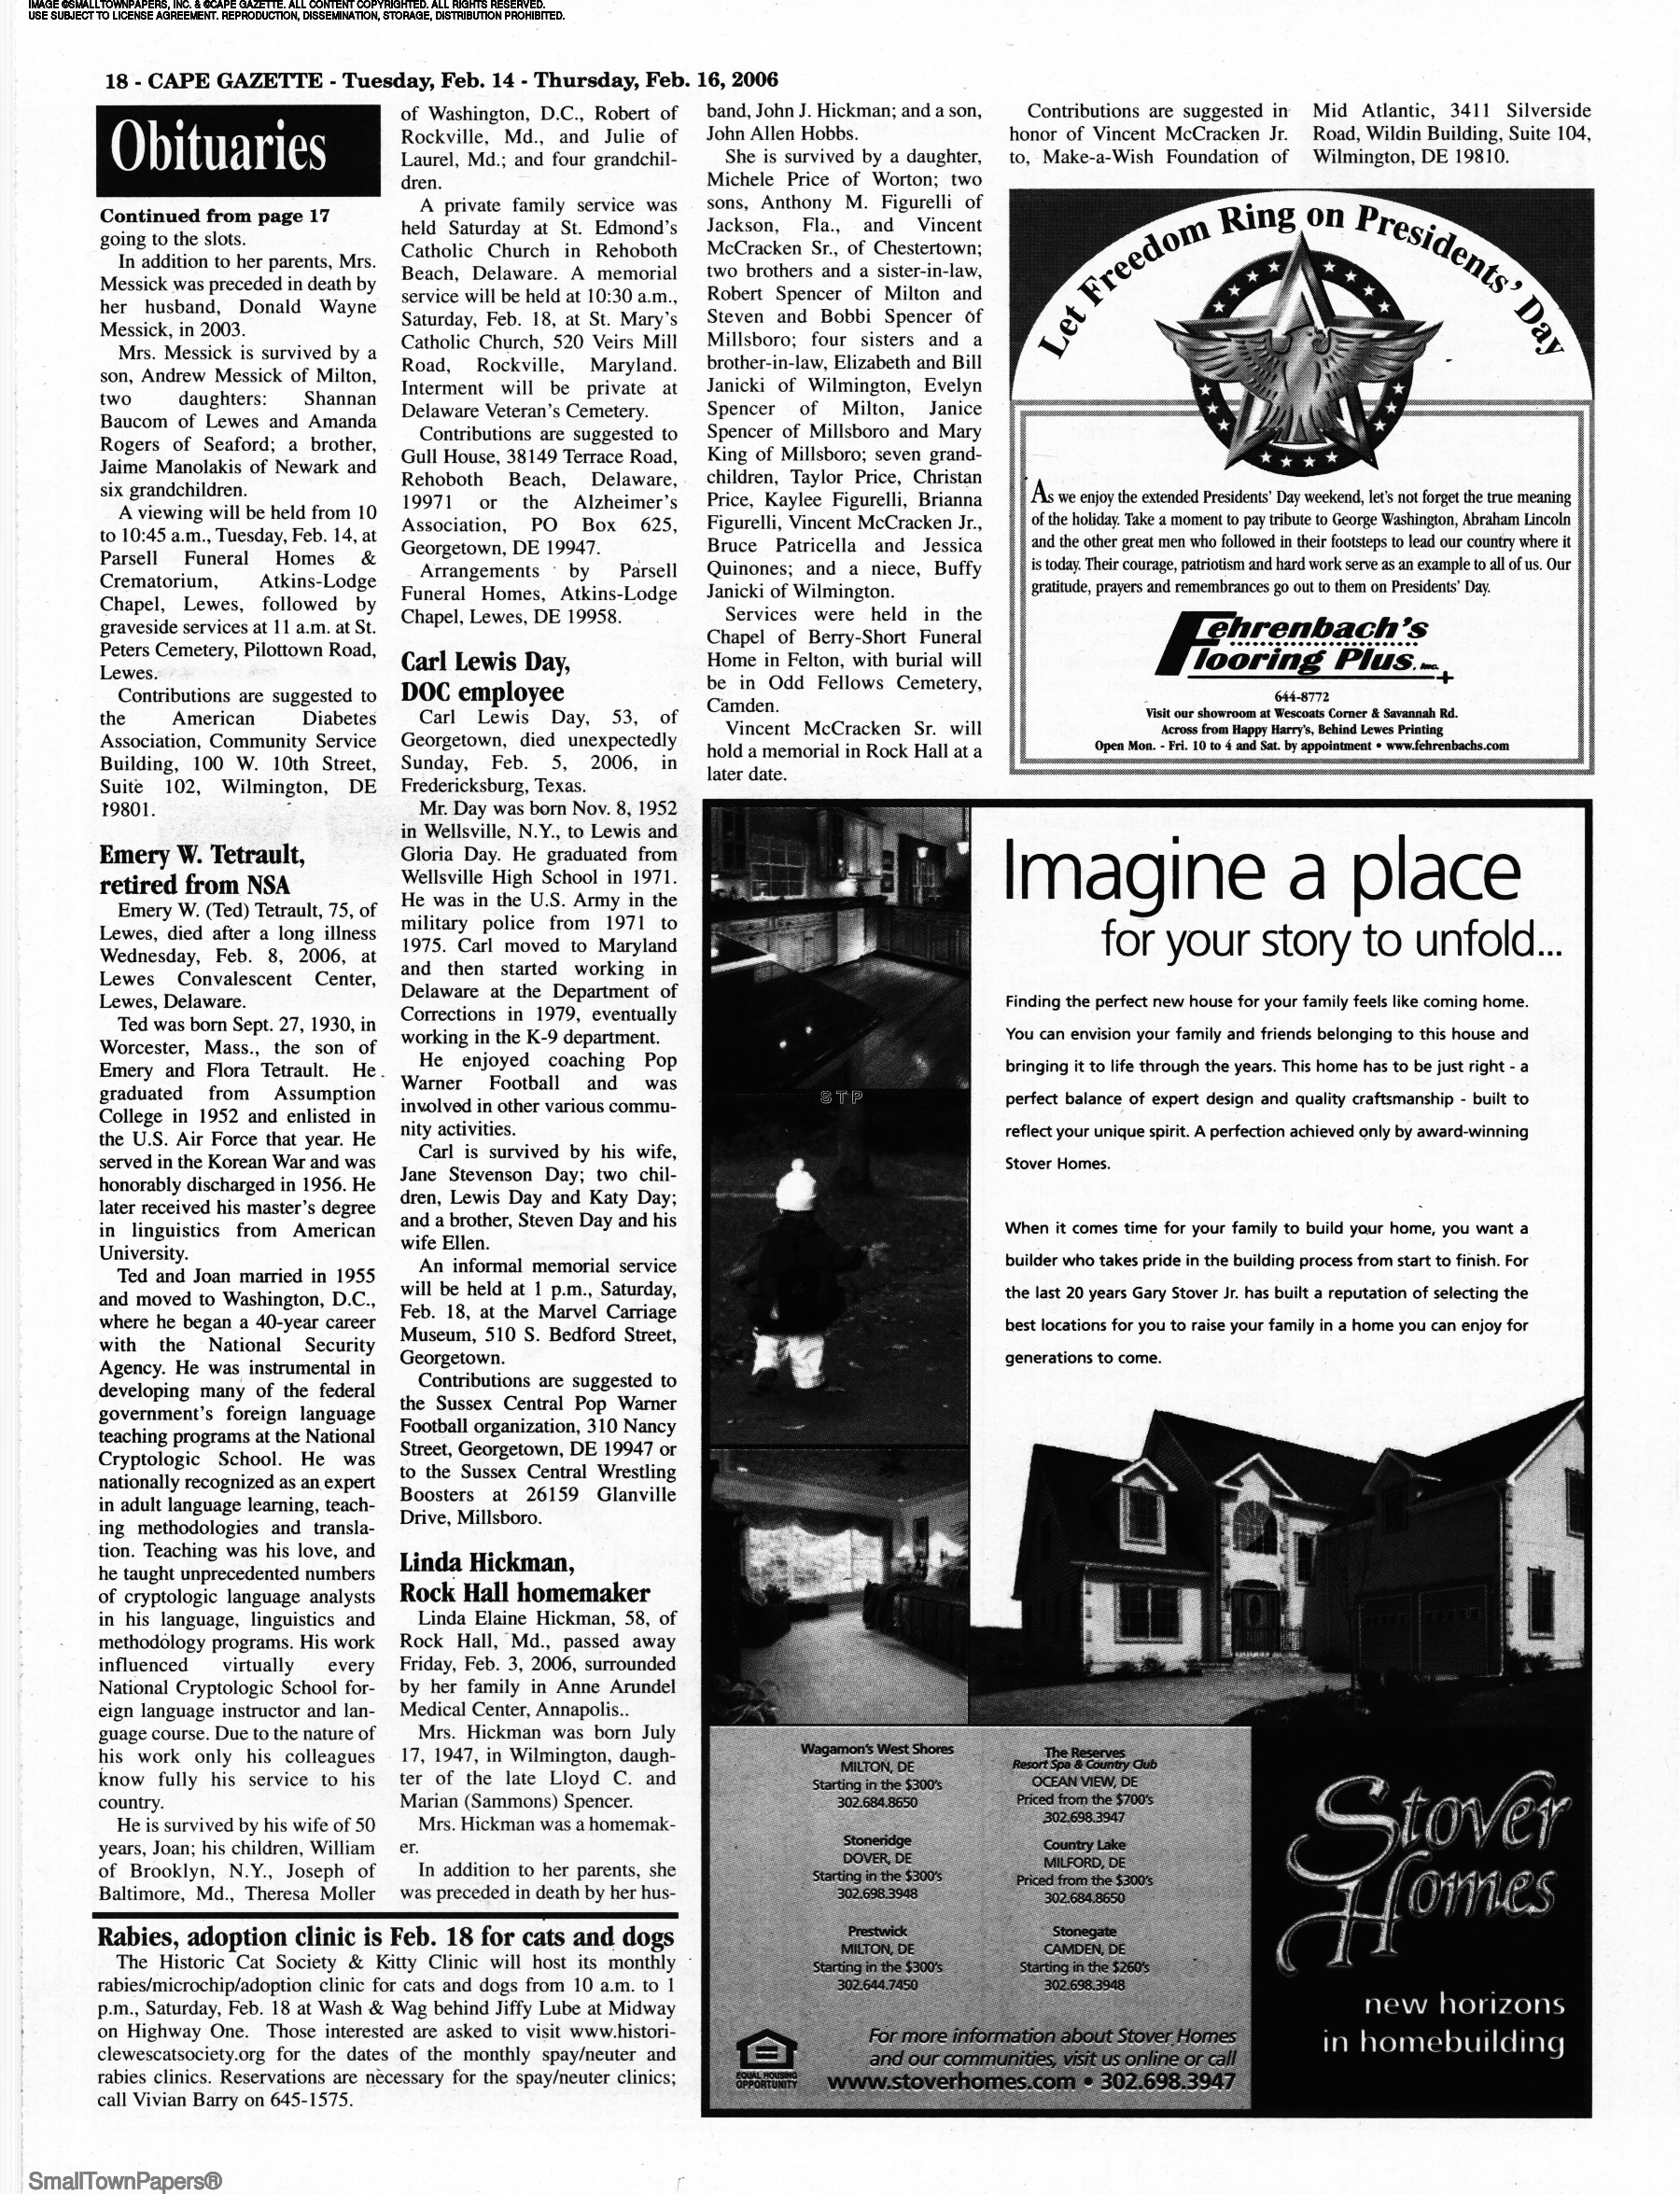 Cape Gazette February 14, 2006: Page 18